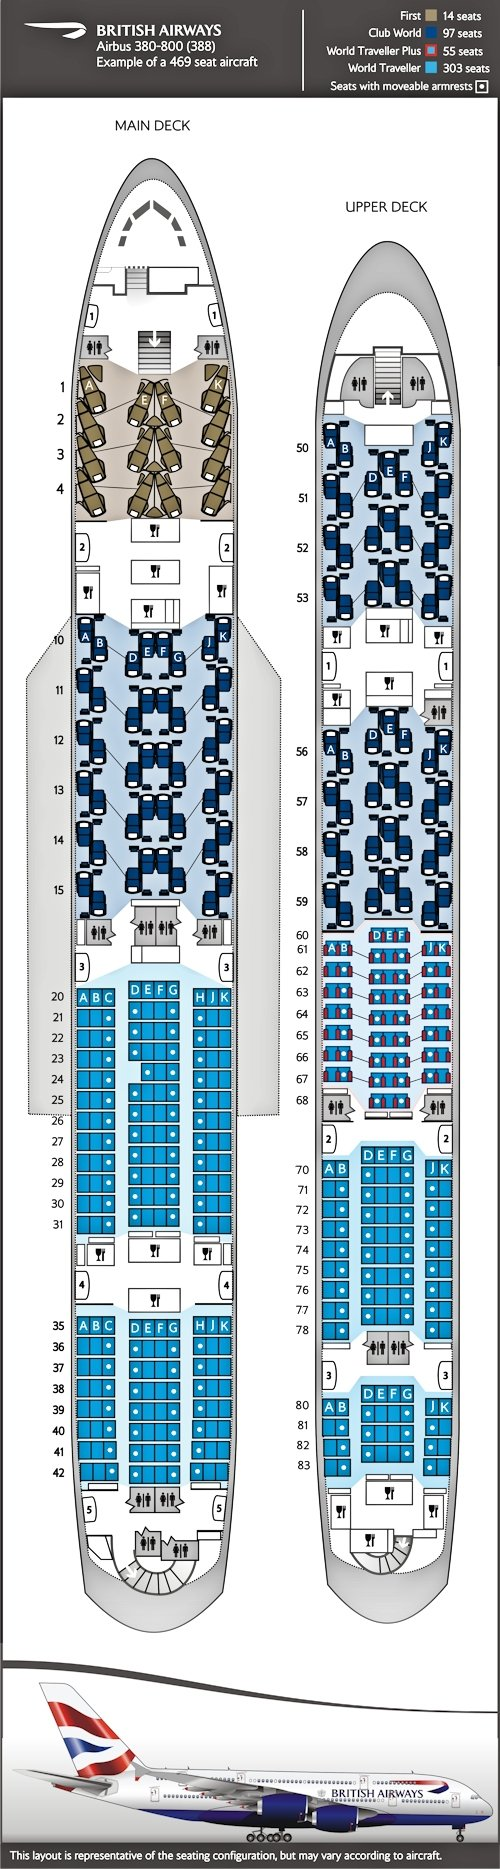 BA A380 SEATING